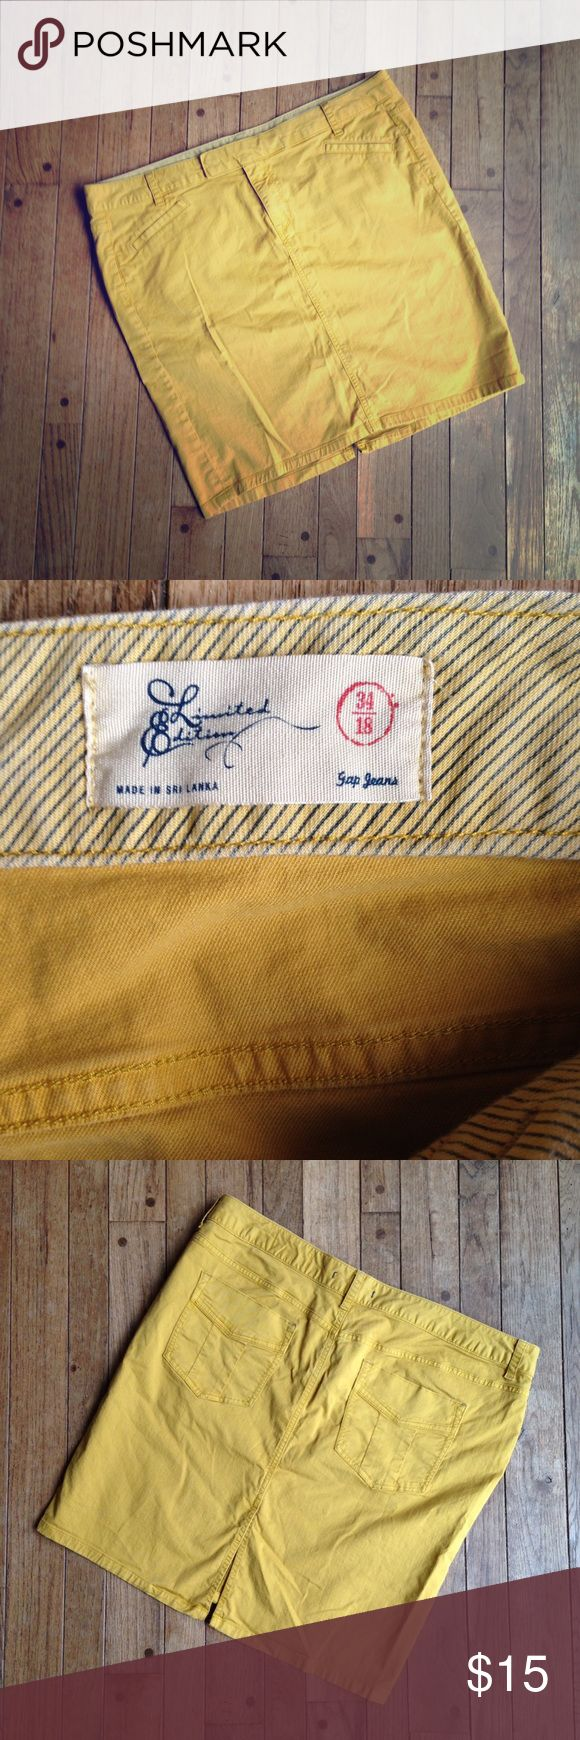 """GAP """"gelded gold"""" limited edition mini skirt Like new!  Beautiful """"gelded gold"""" color. Two pockets in front, two in back. Zip, button, and slide closure in front. Belt loops. 7"""" Slit in back.  W-40. I-20.  99% cotton. 1% Lycra. GAP Skirts Mini"""